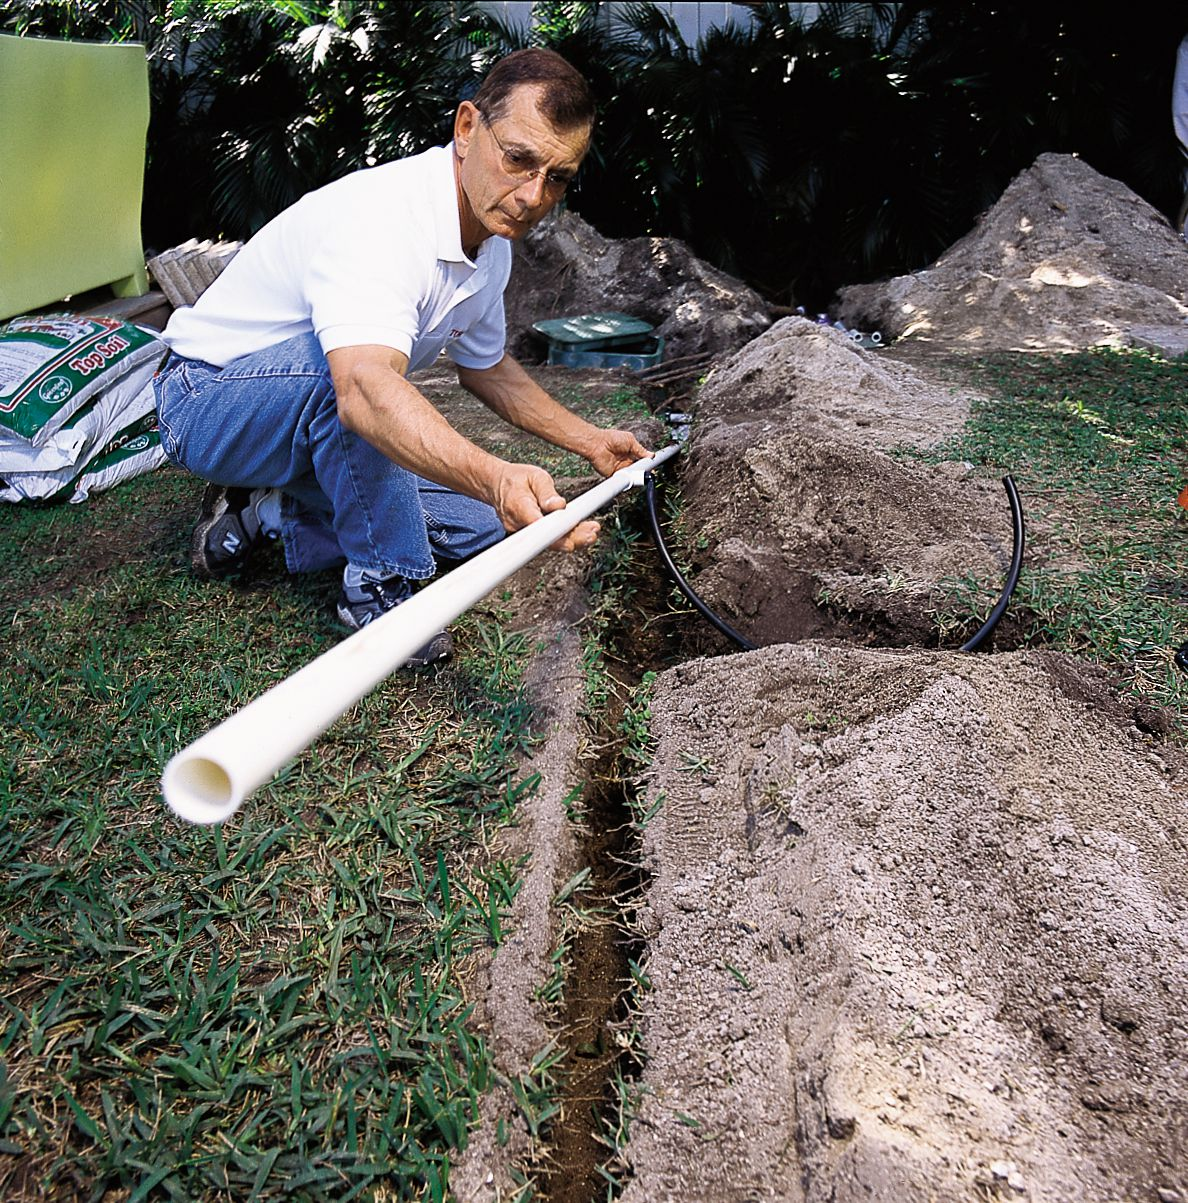 Man Placing Pipes In Trenches For Sprinkler System